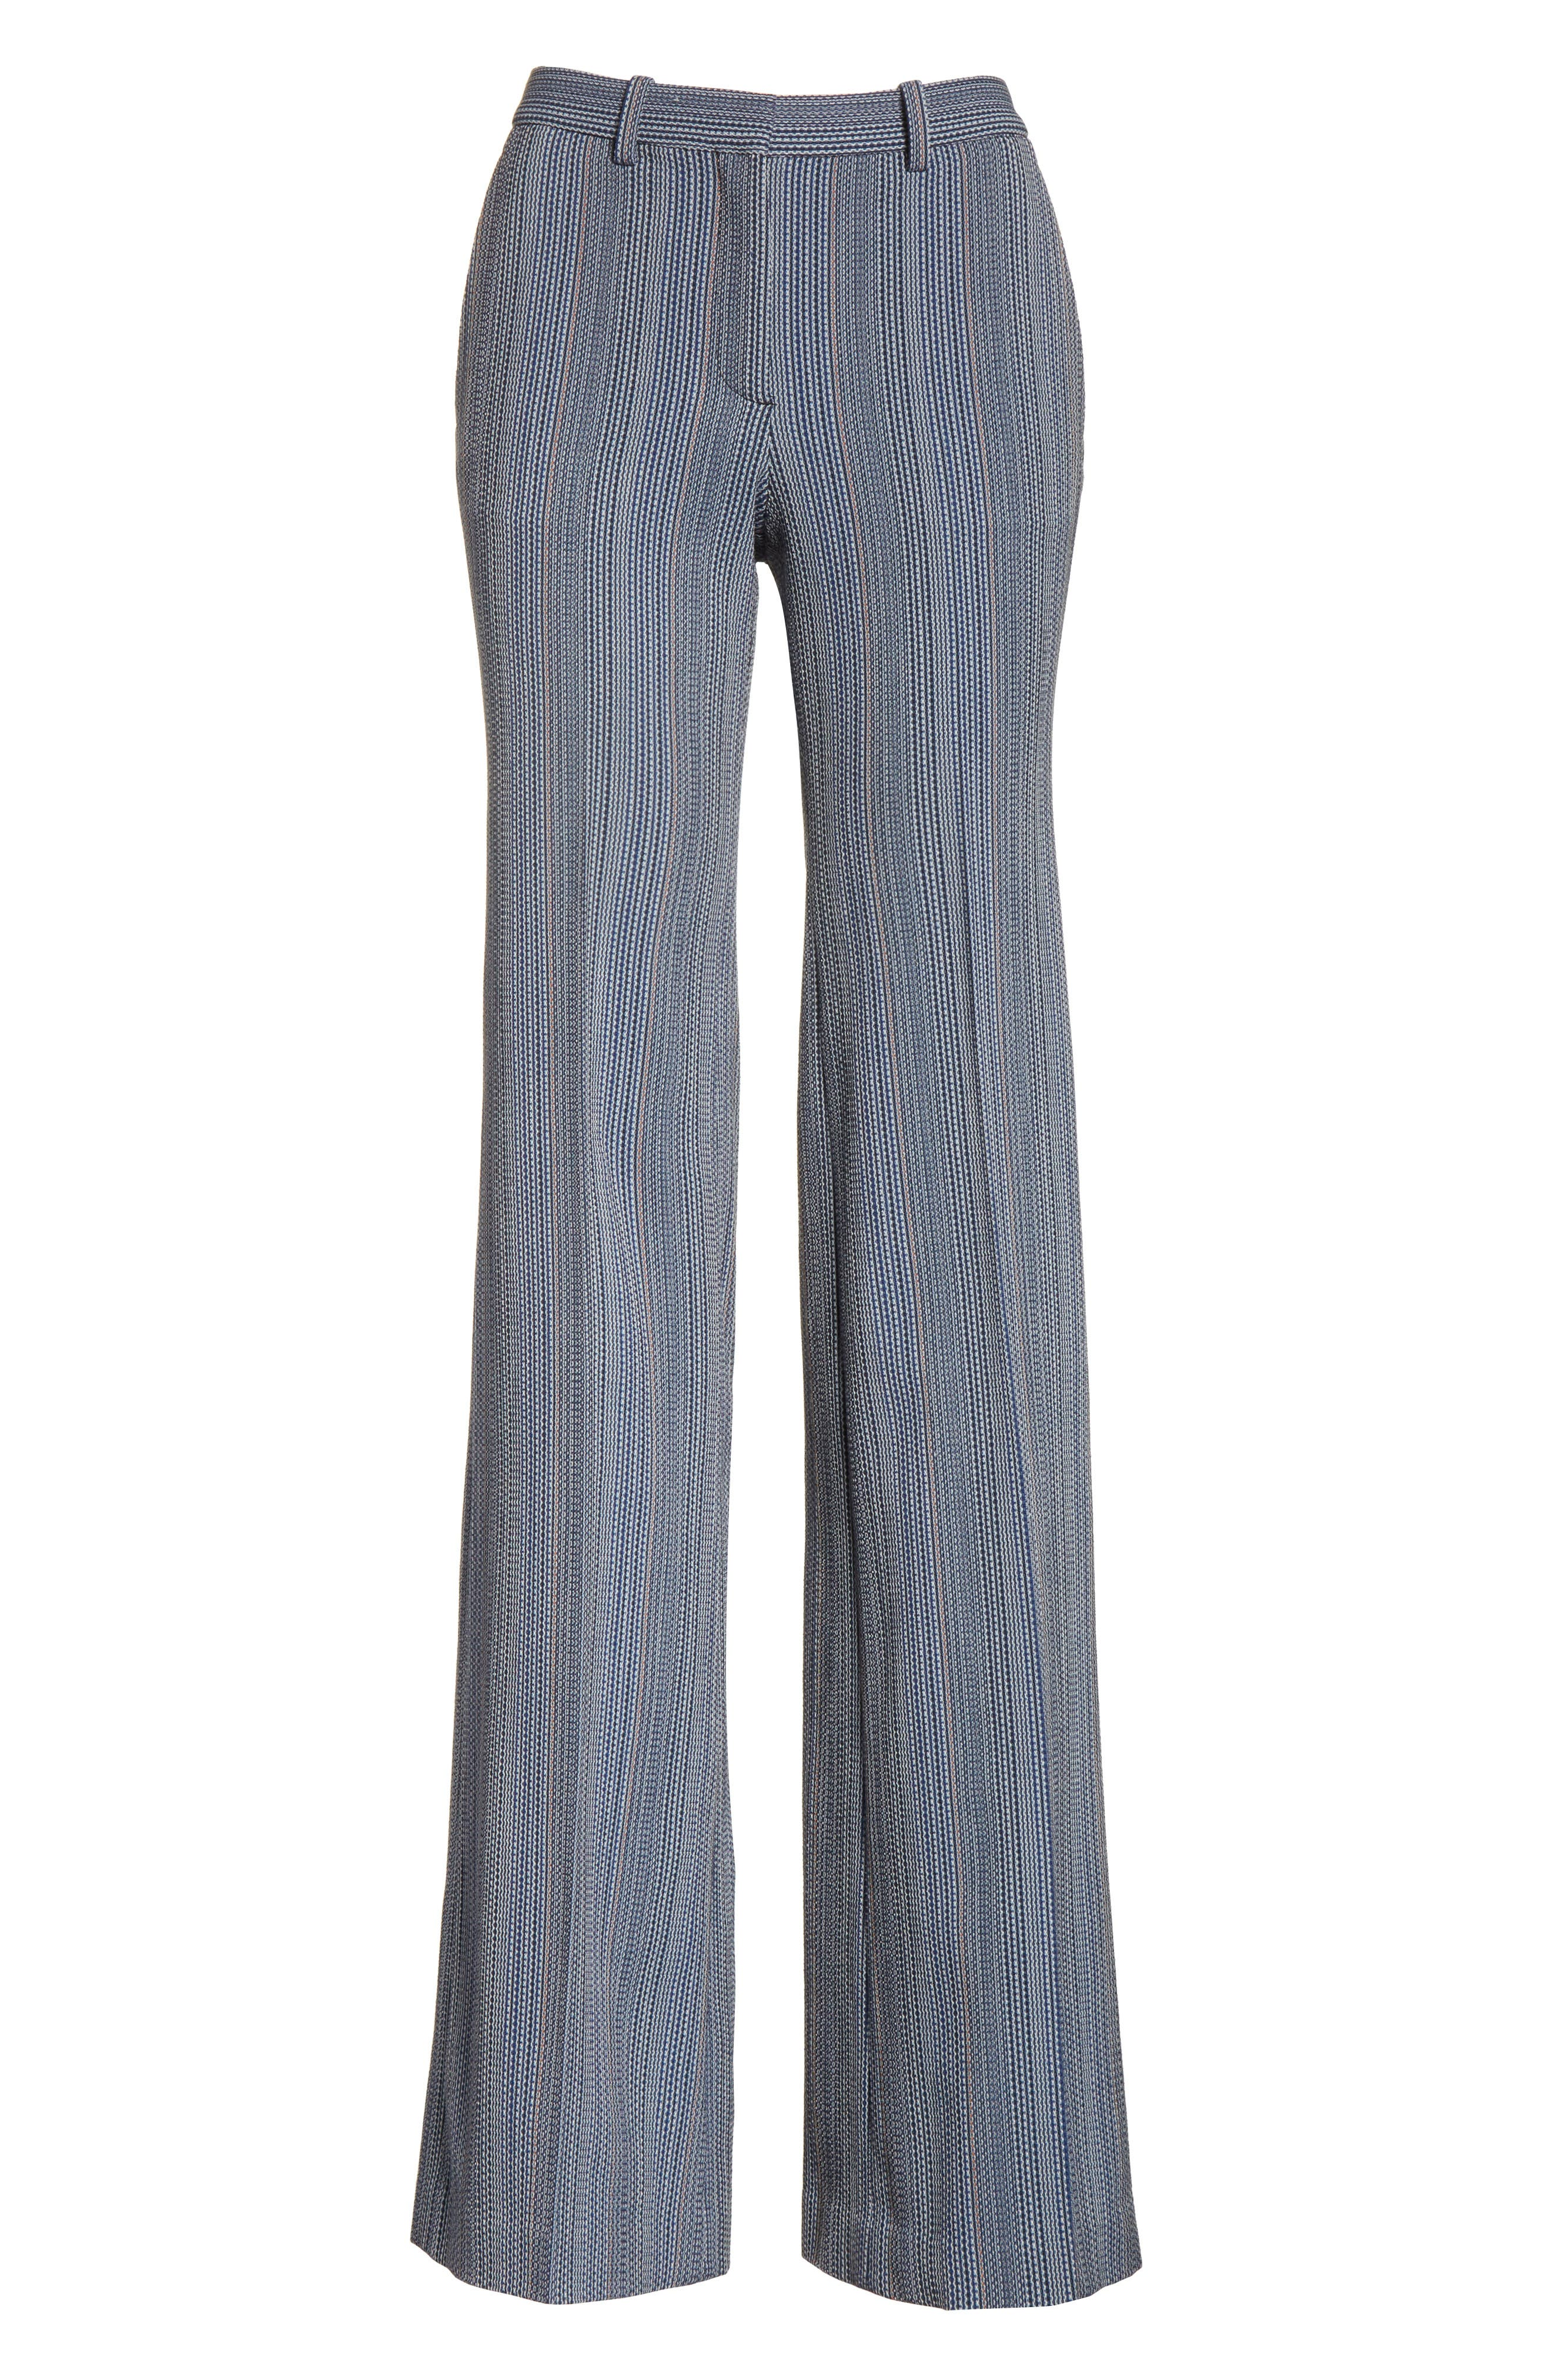 Demitria 2 Eldora Stripe Pants,                             Alternate thumbnail 6, color,                             Indigo Multi